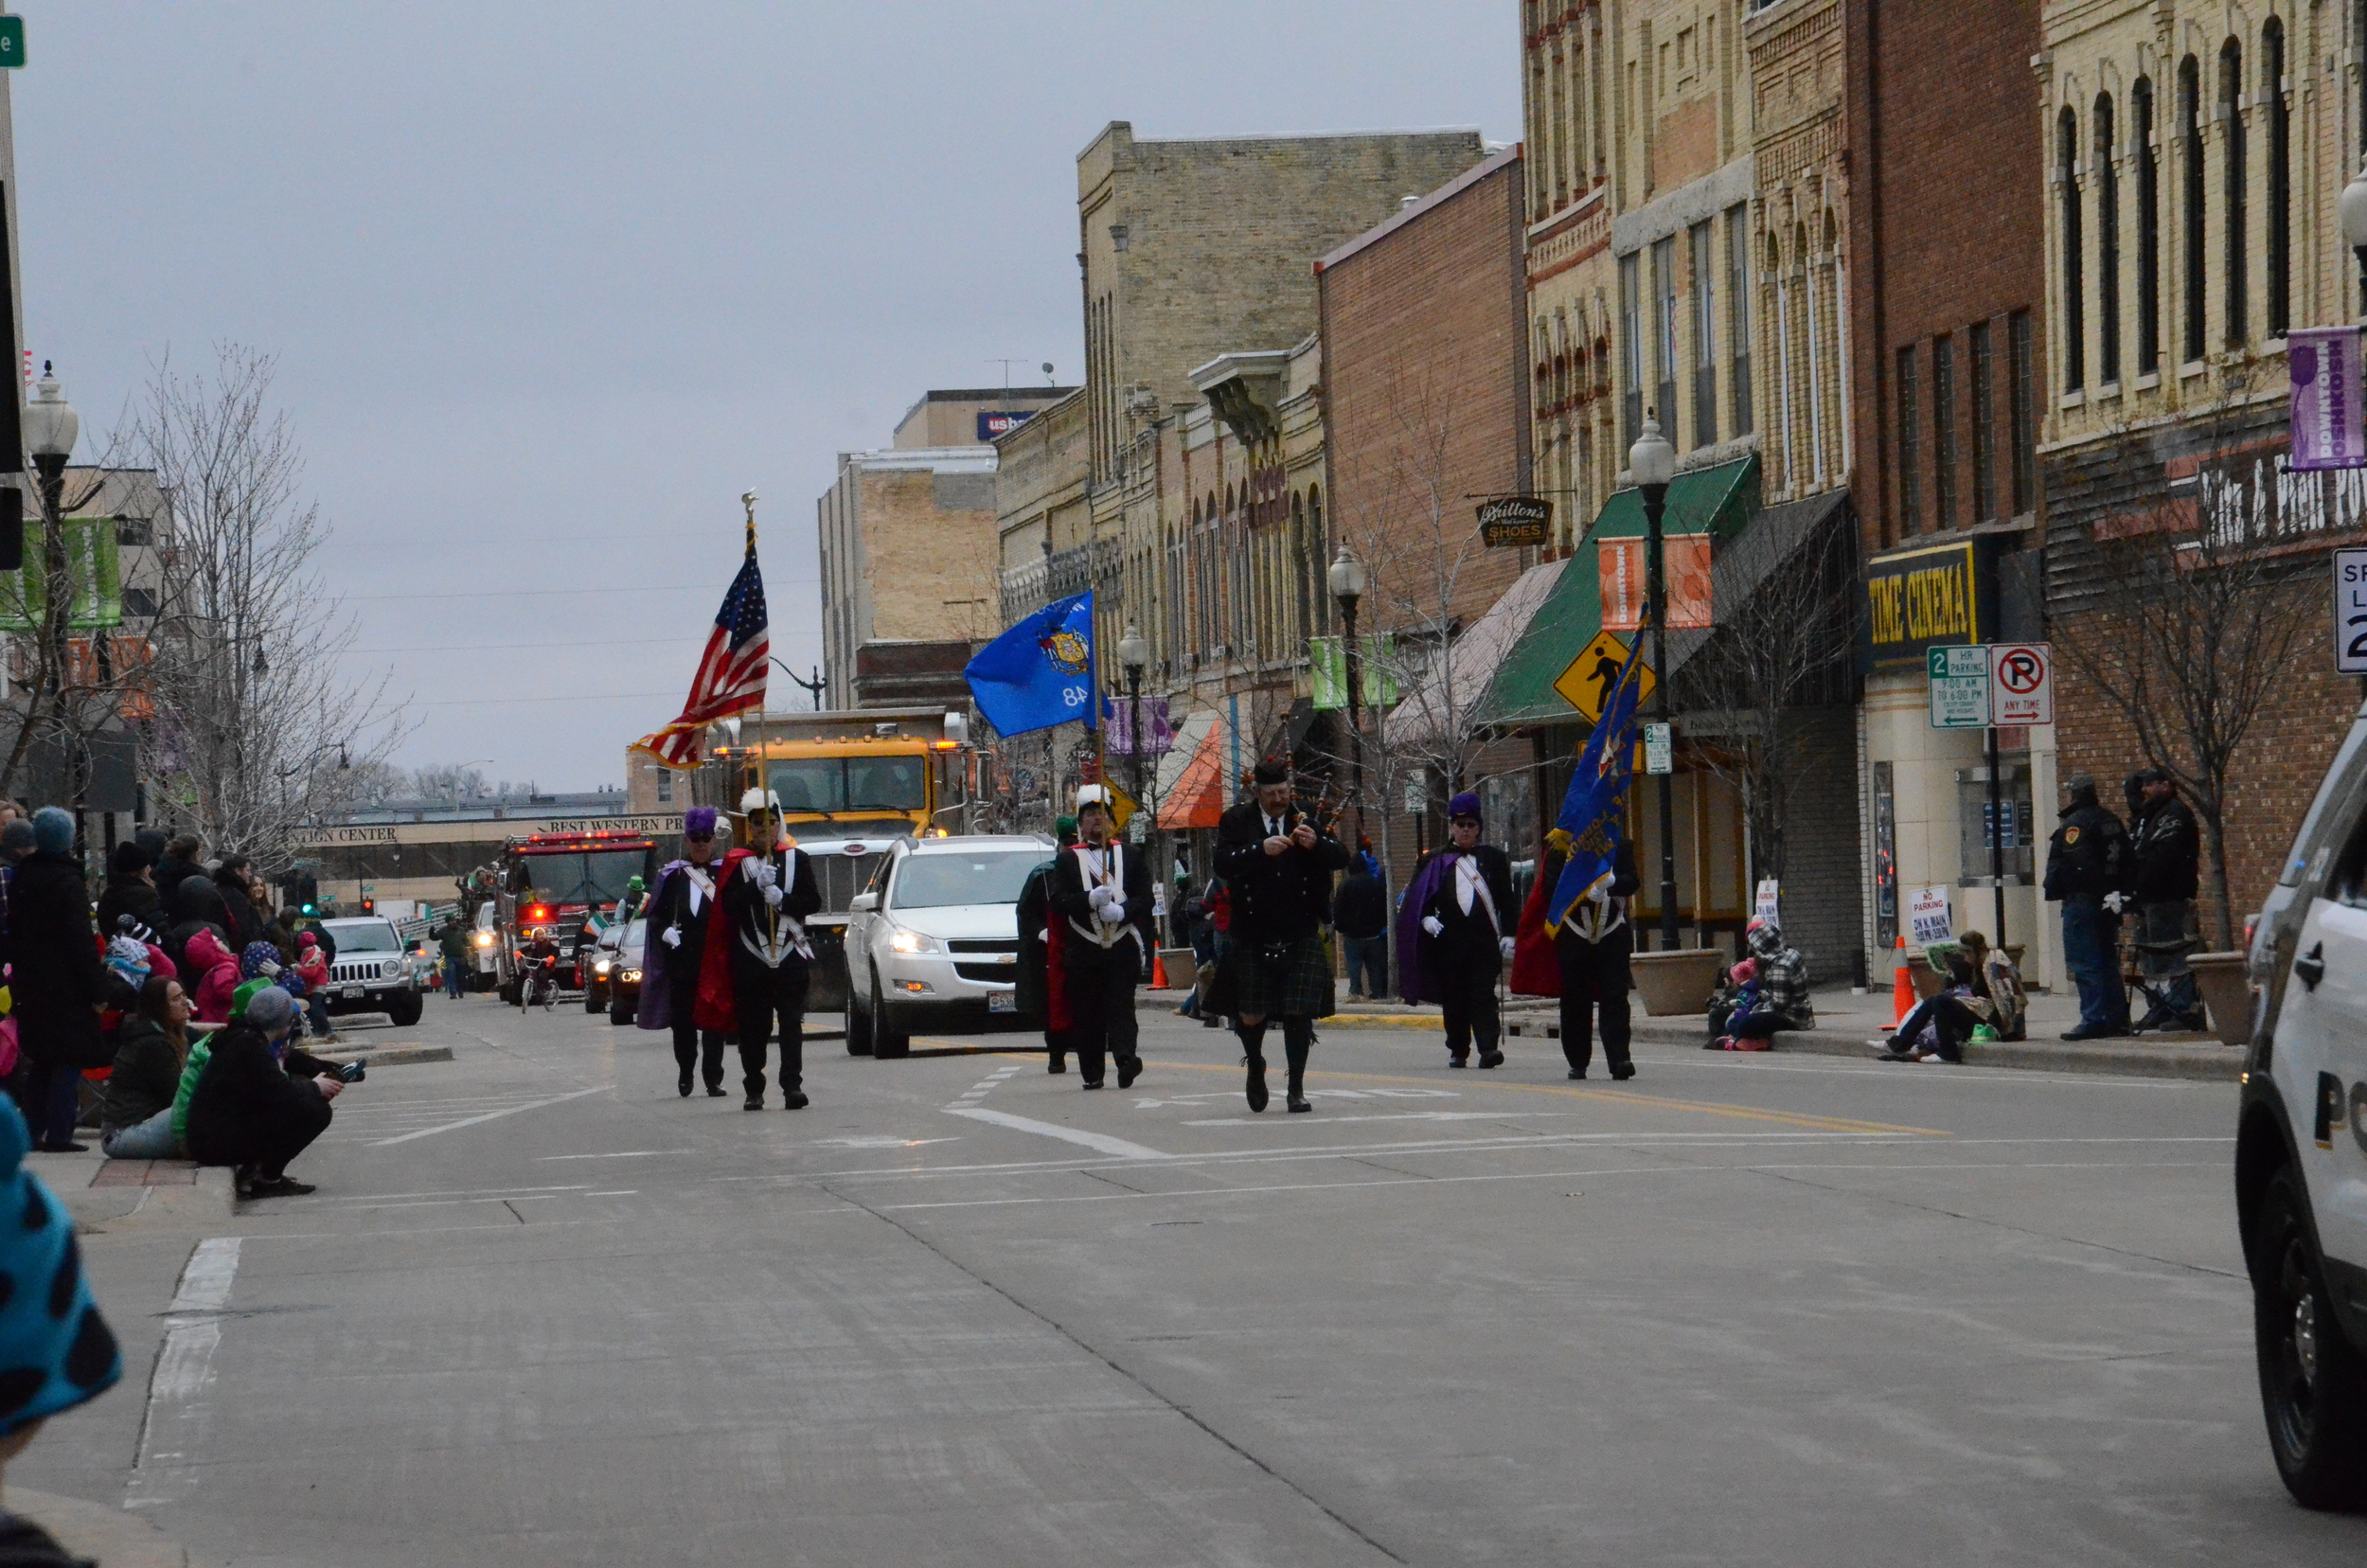 he parade begins with the the sound of bagpipes and the carrying of the Wisconsin flag and United States flag.